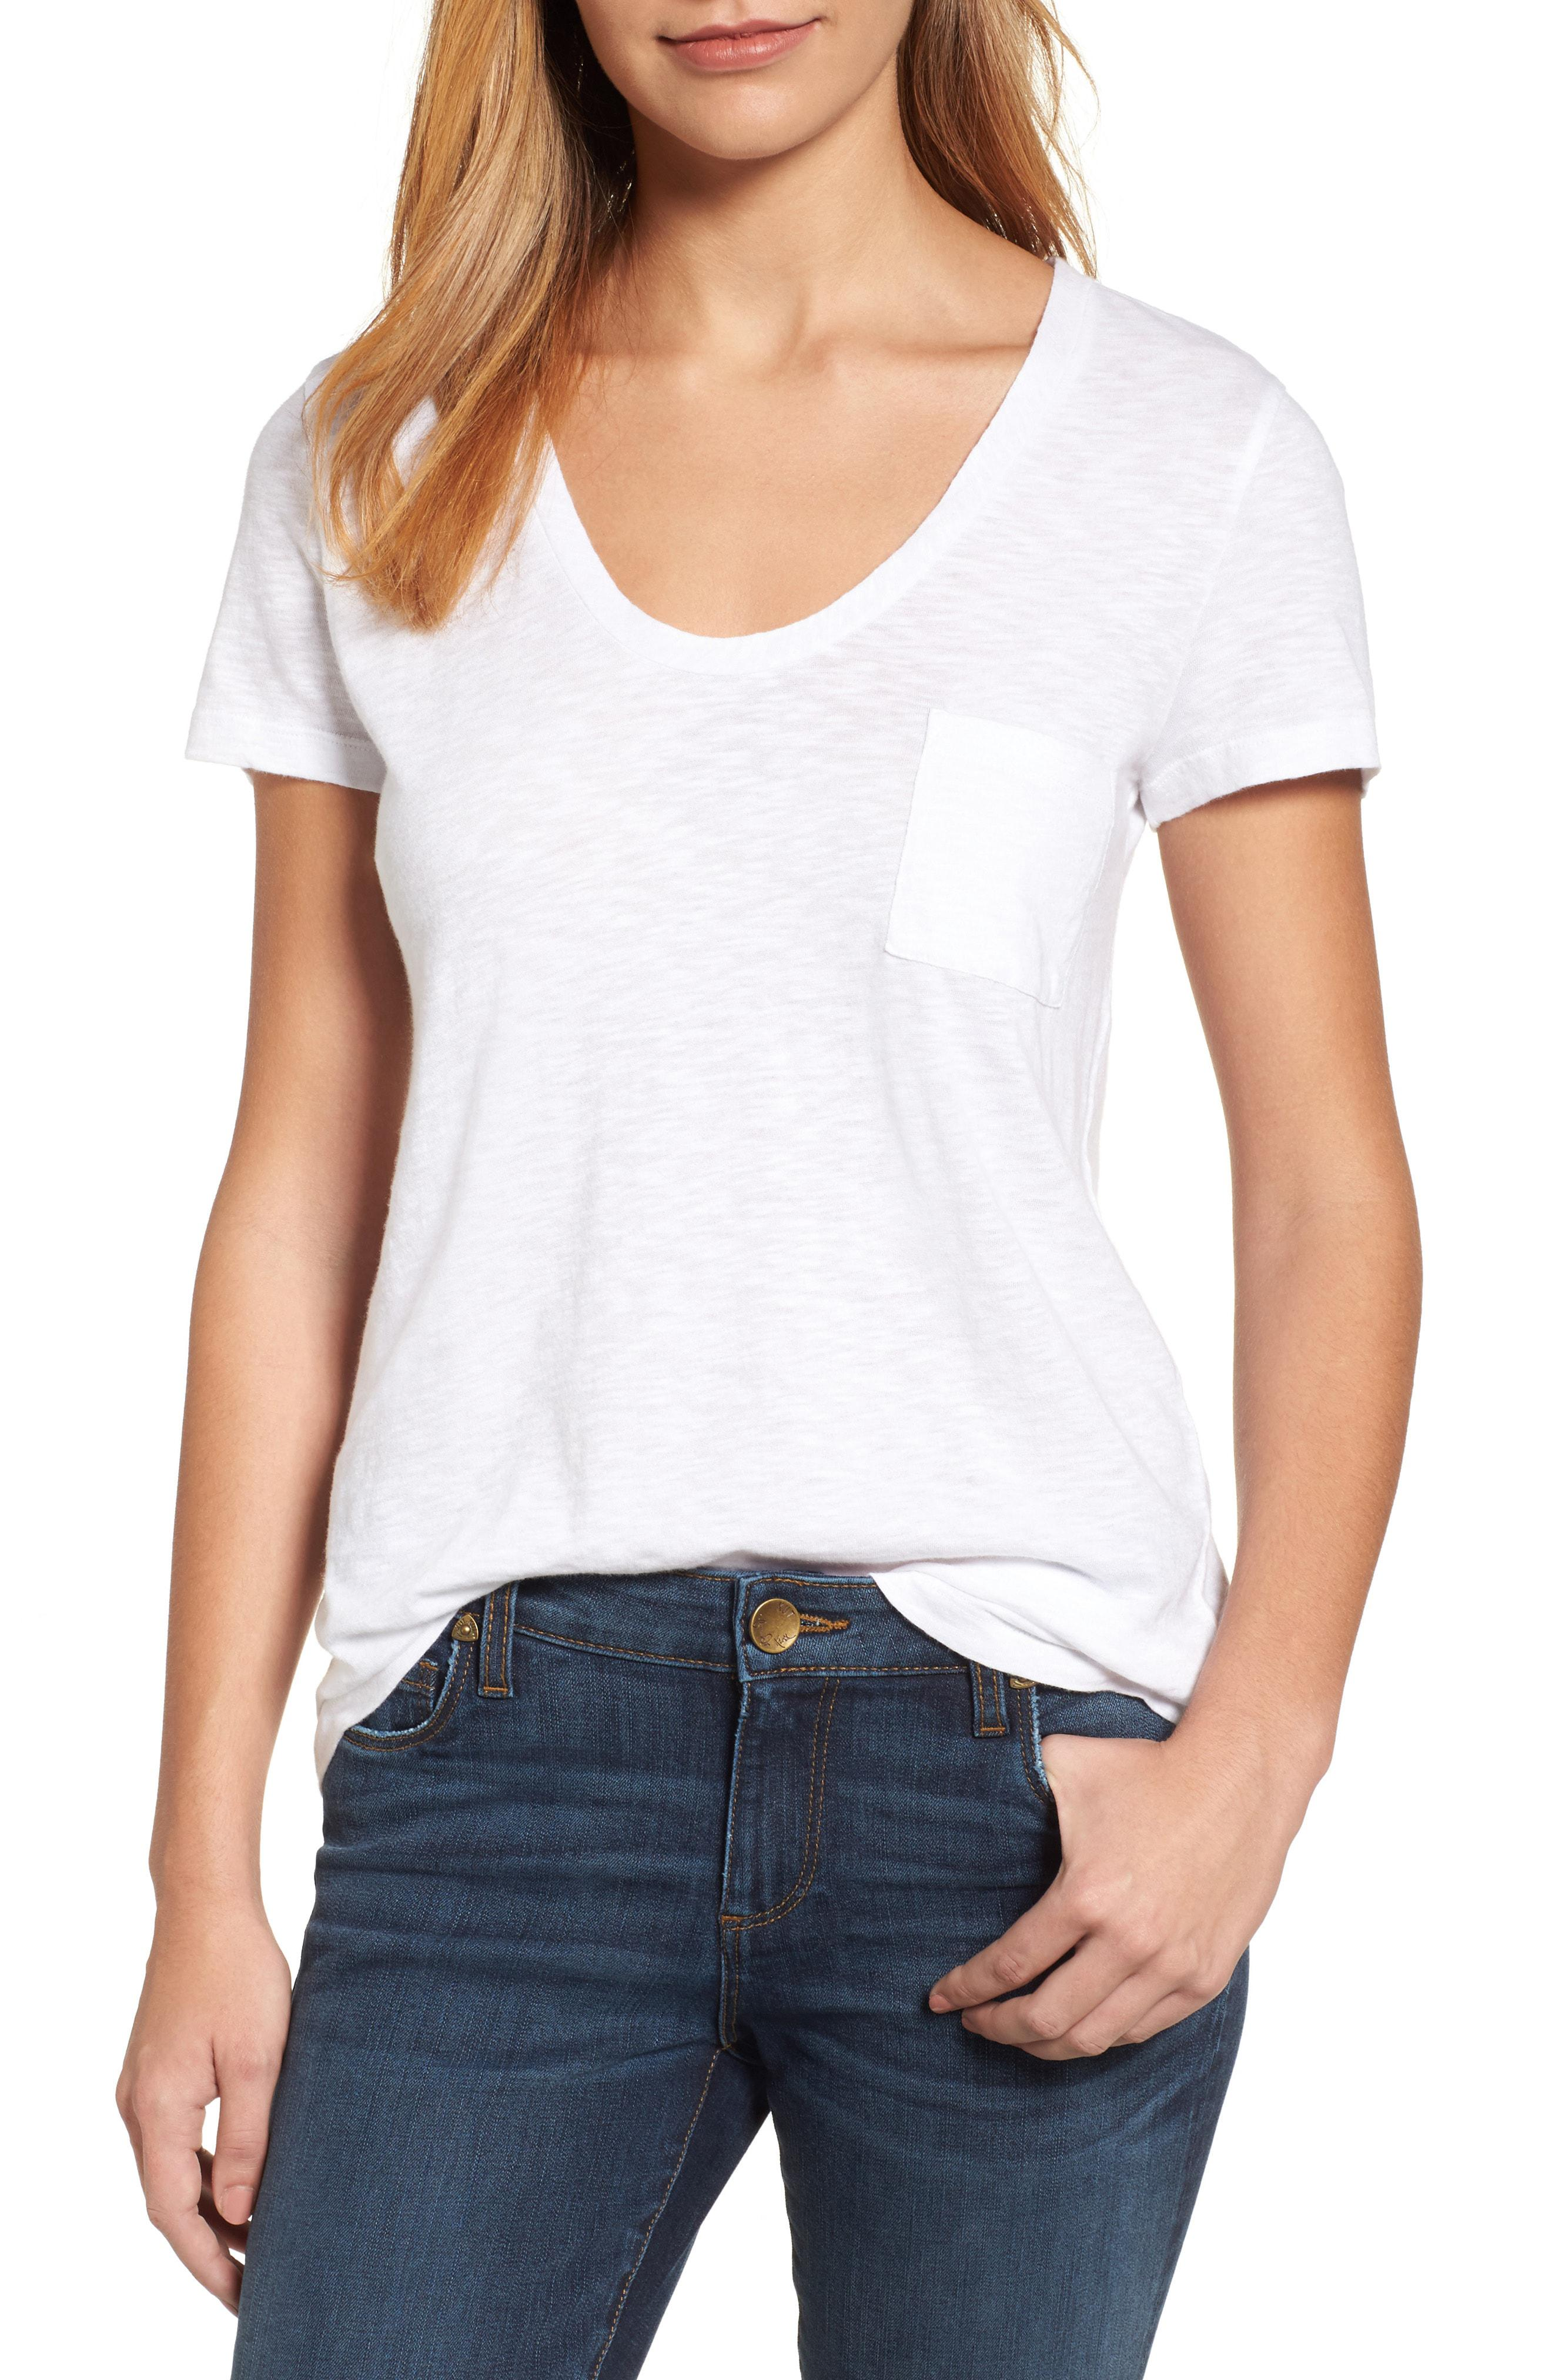 2422c0d6 Lyst - Caslon Caslon Relaxed Slub Knit U-neck Tee in White